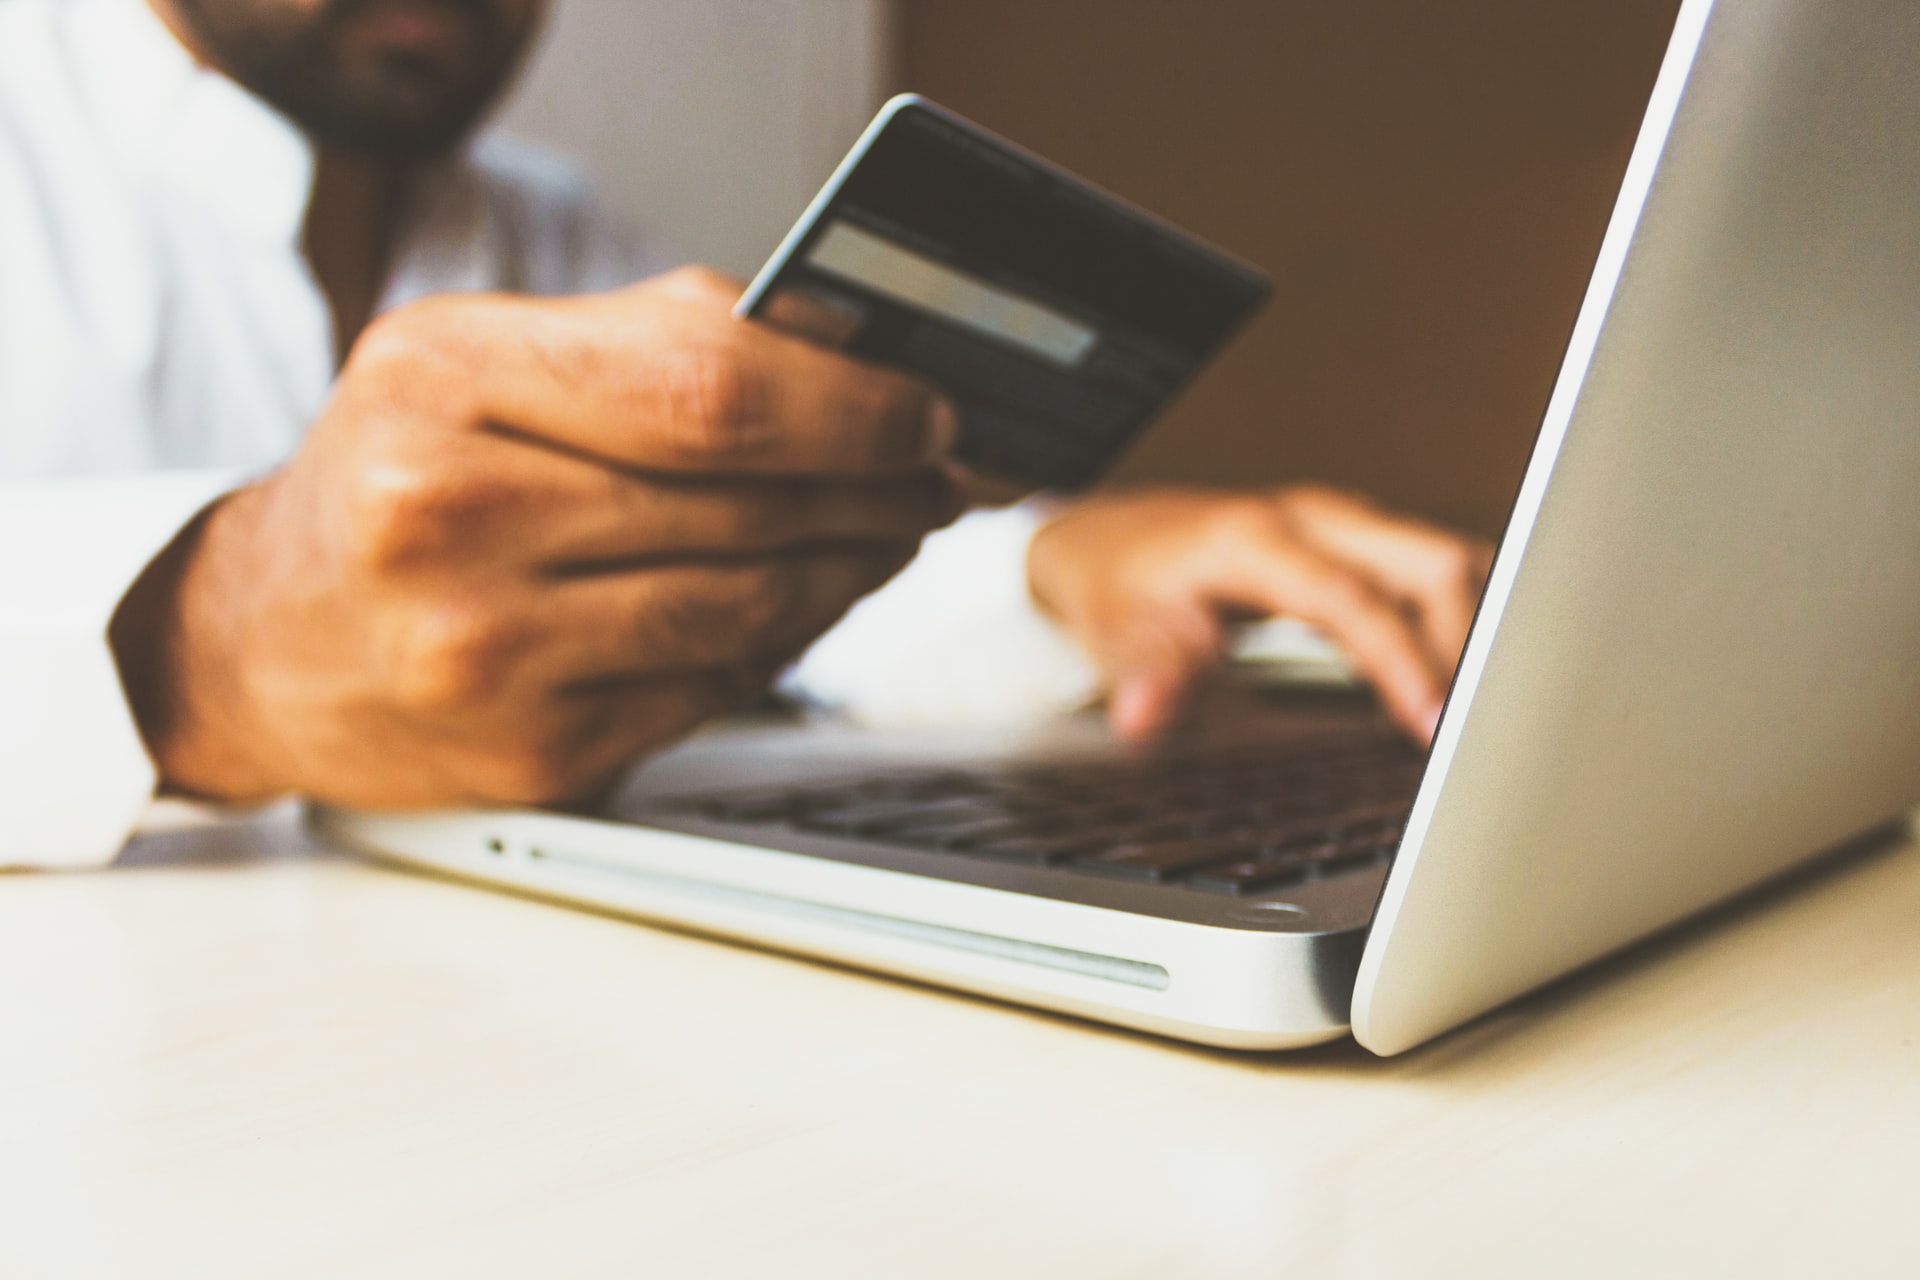 man using credit card to pay for an online transaction